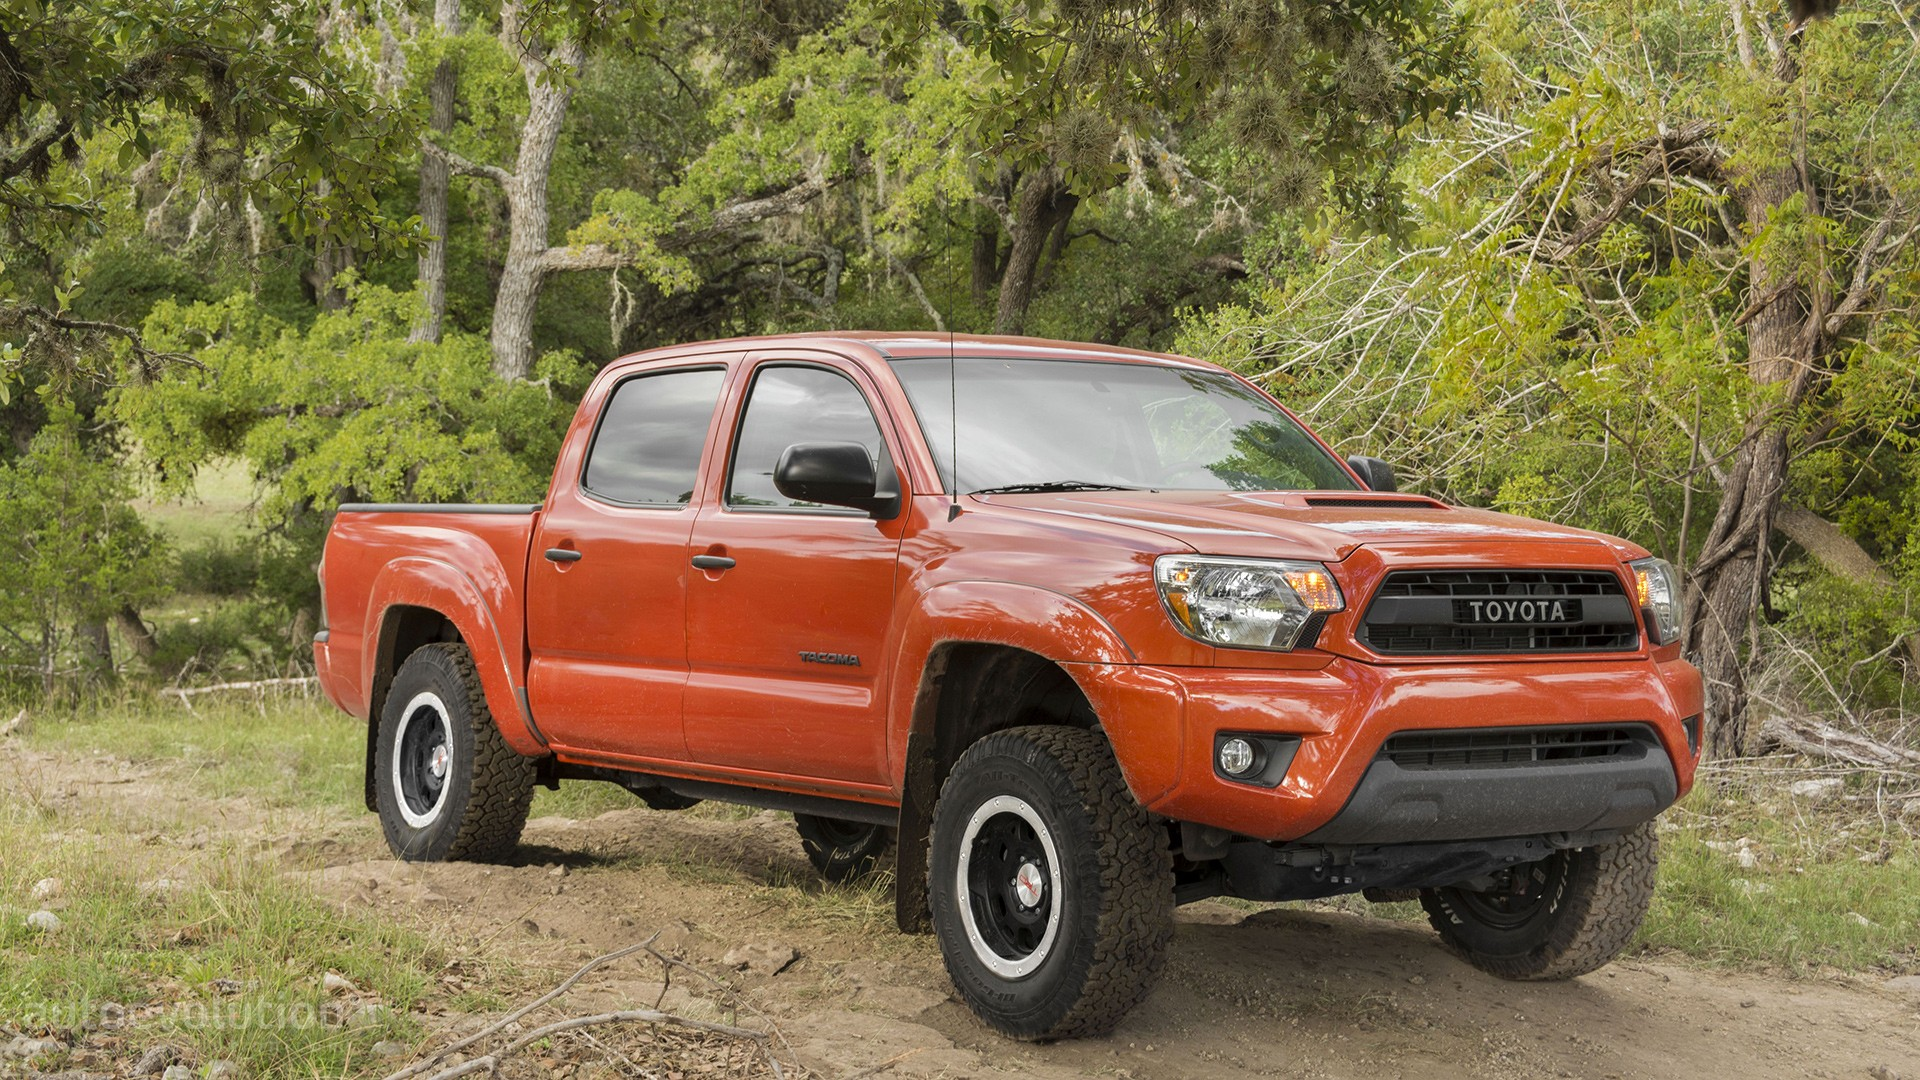 Toyota Tacoma Trd Cat Back Exhaust